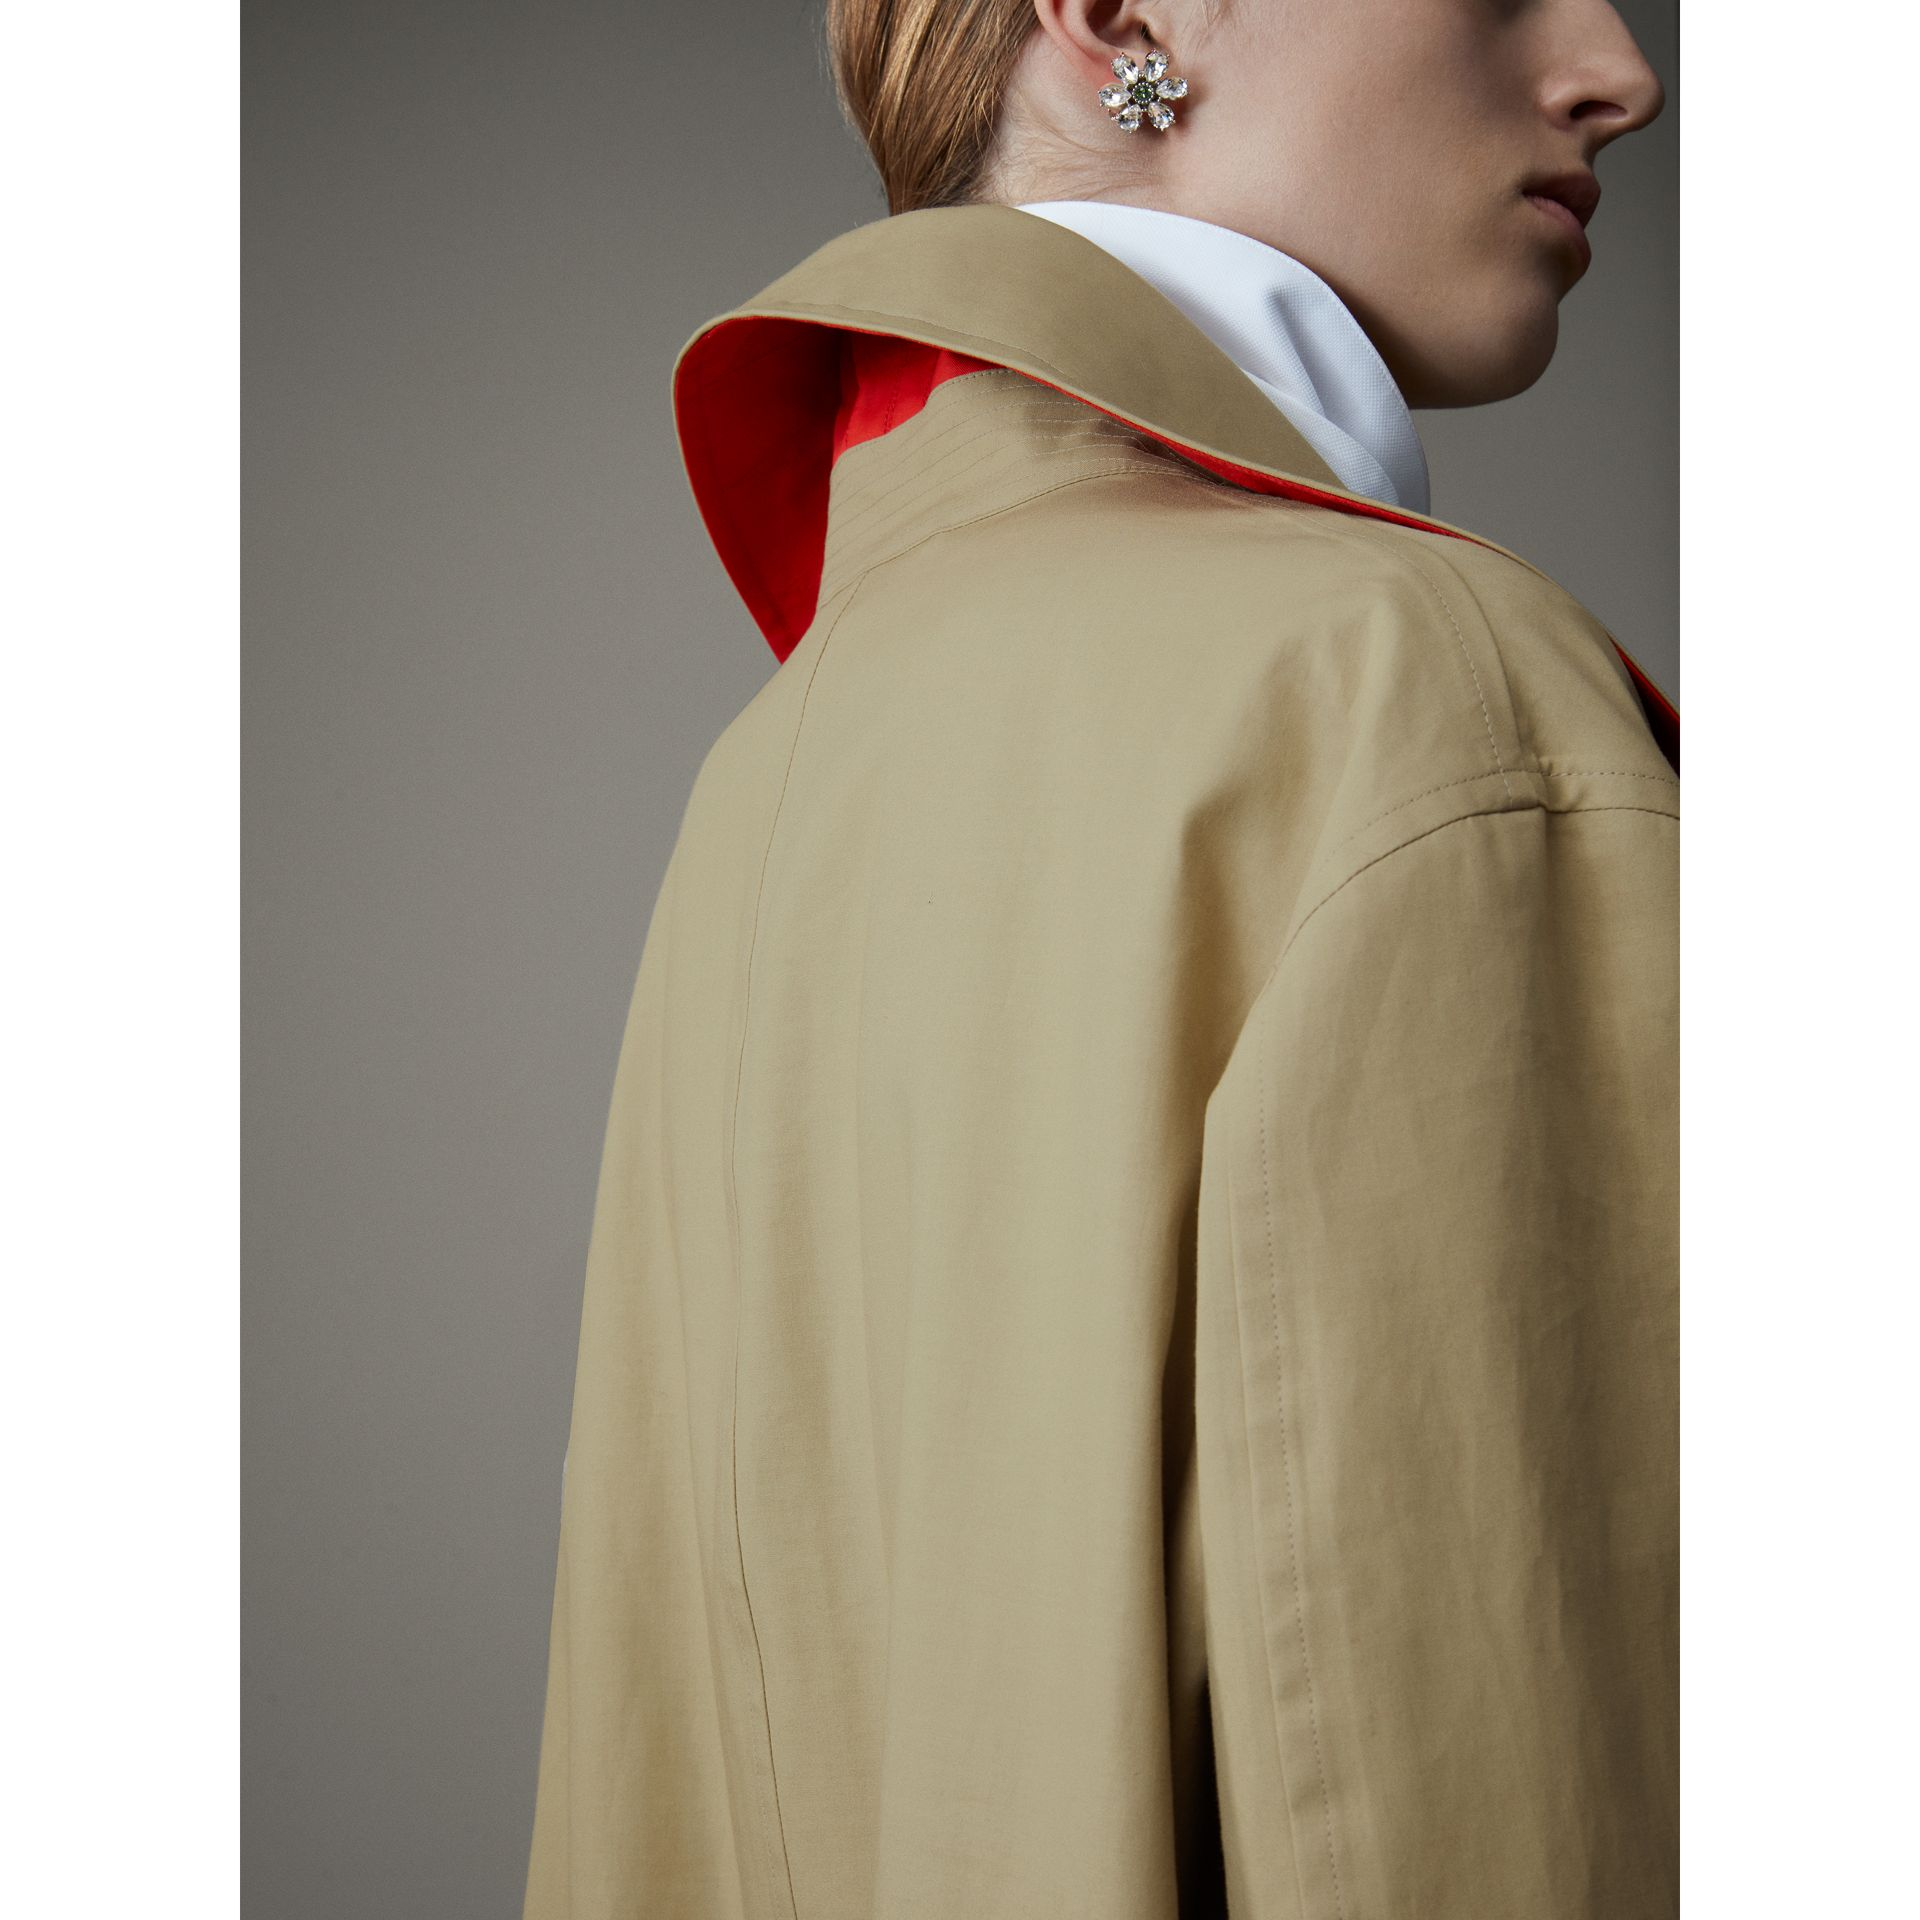 Bonded Cotton Poplin Seam-sealed Car Coat in Beige/red - Women | Burberry - gallery image 5